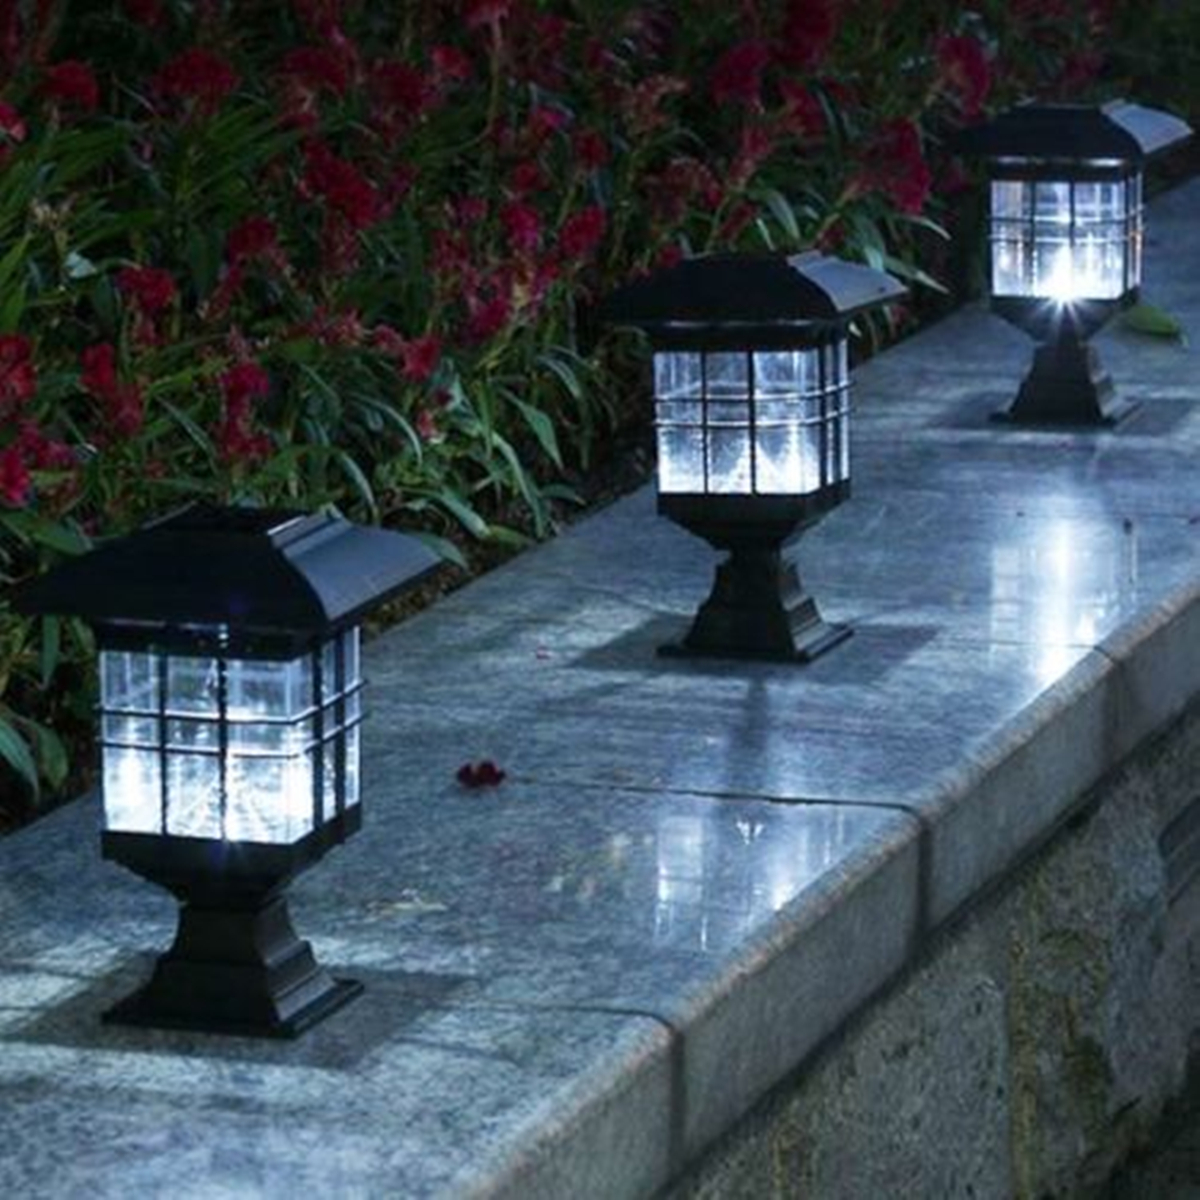 Led Lamps Search For Flights Jiguoor Palace Lantern Led Solar Powered Outdoor Garden Yard Landscape Light For Gardening Pathway Decoration Light Sensor Lamps Careful Calculation And Strict Budgeting